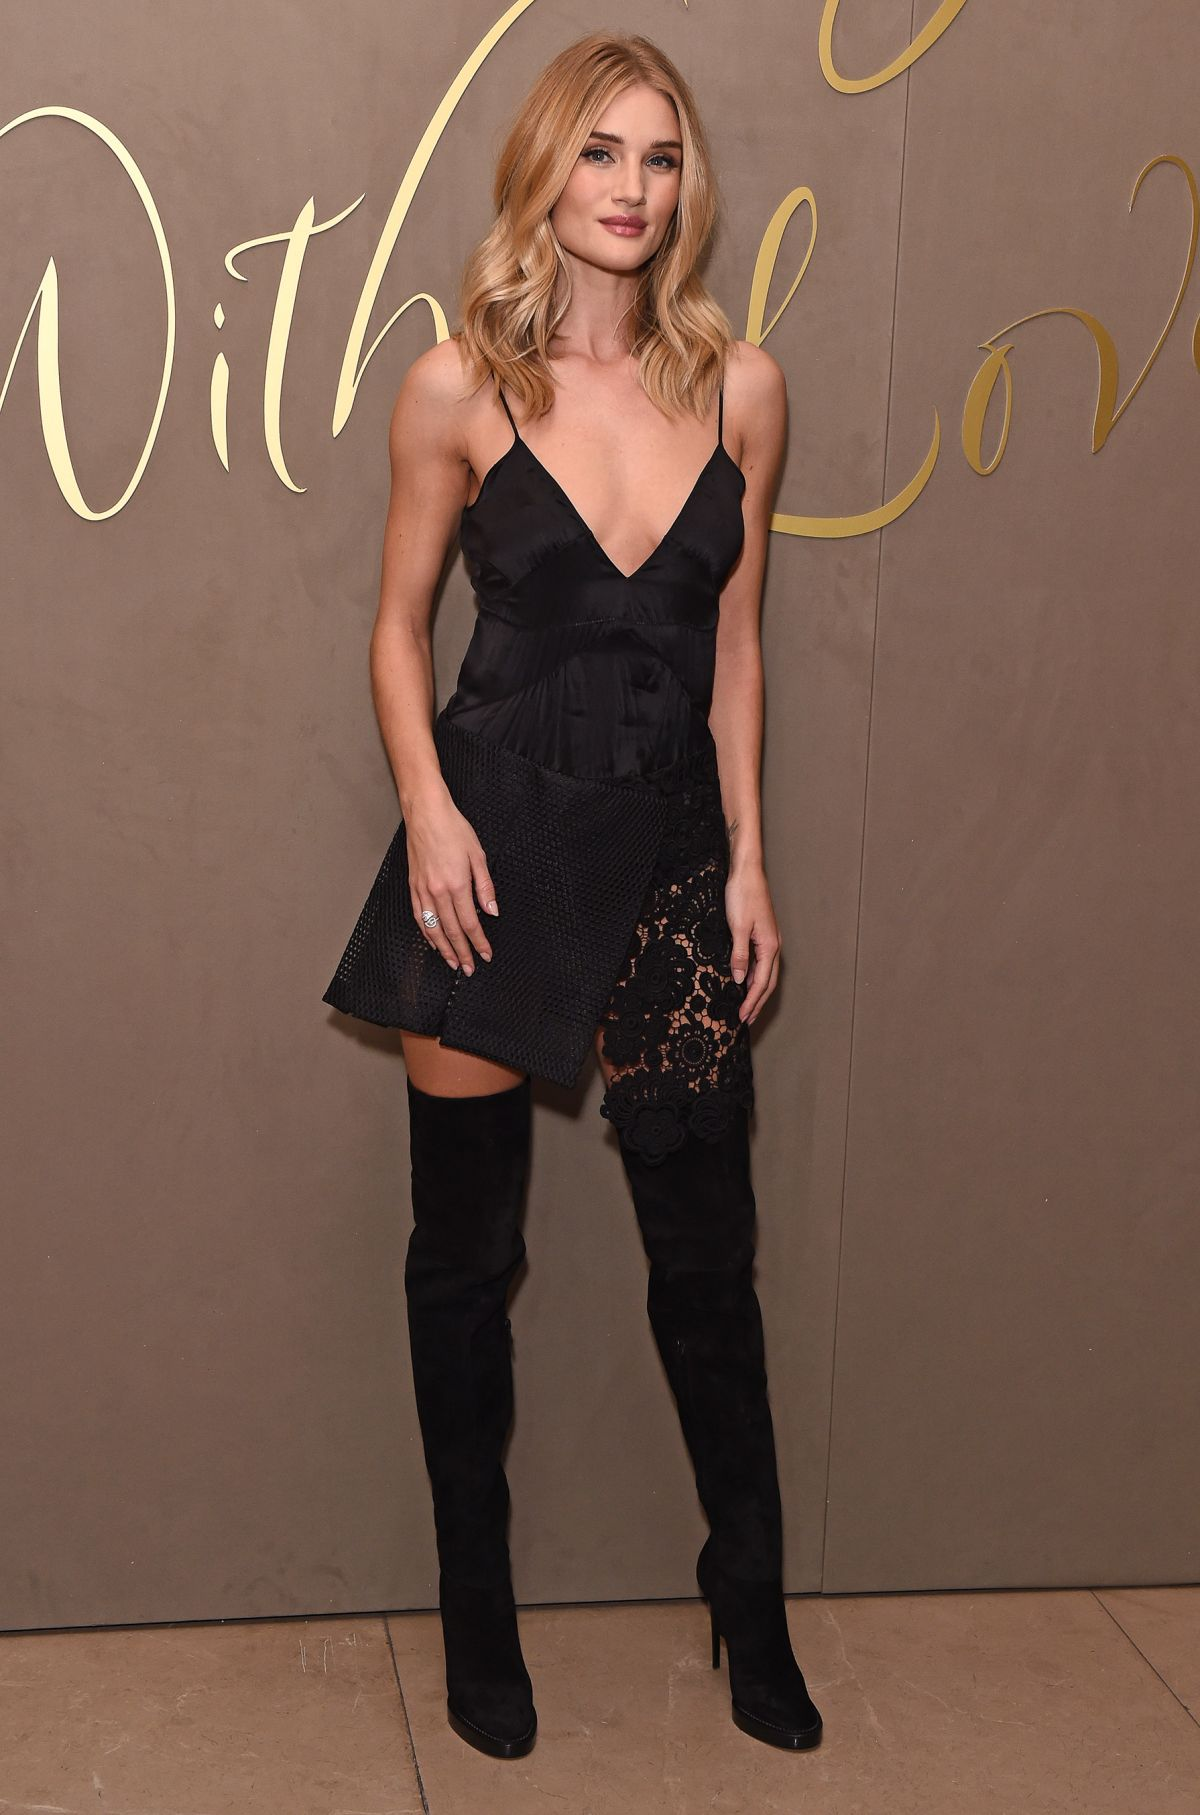 ROSIE HUNTINGTON-WHITELEY at Burberry Festive Film Premiere in London ... Rosie Huntington Whiteley